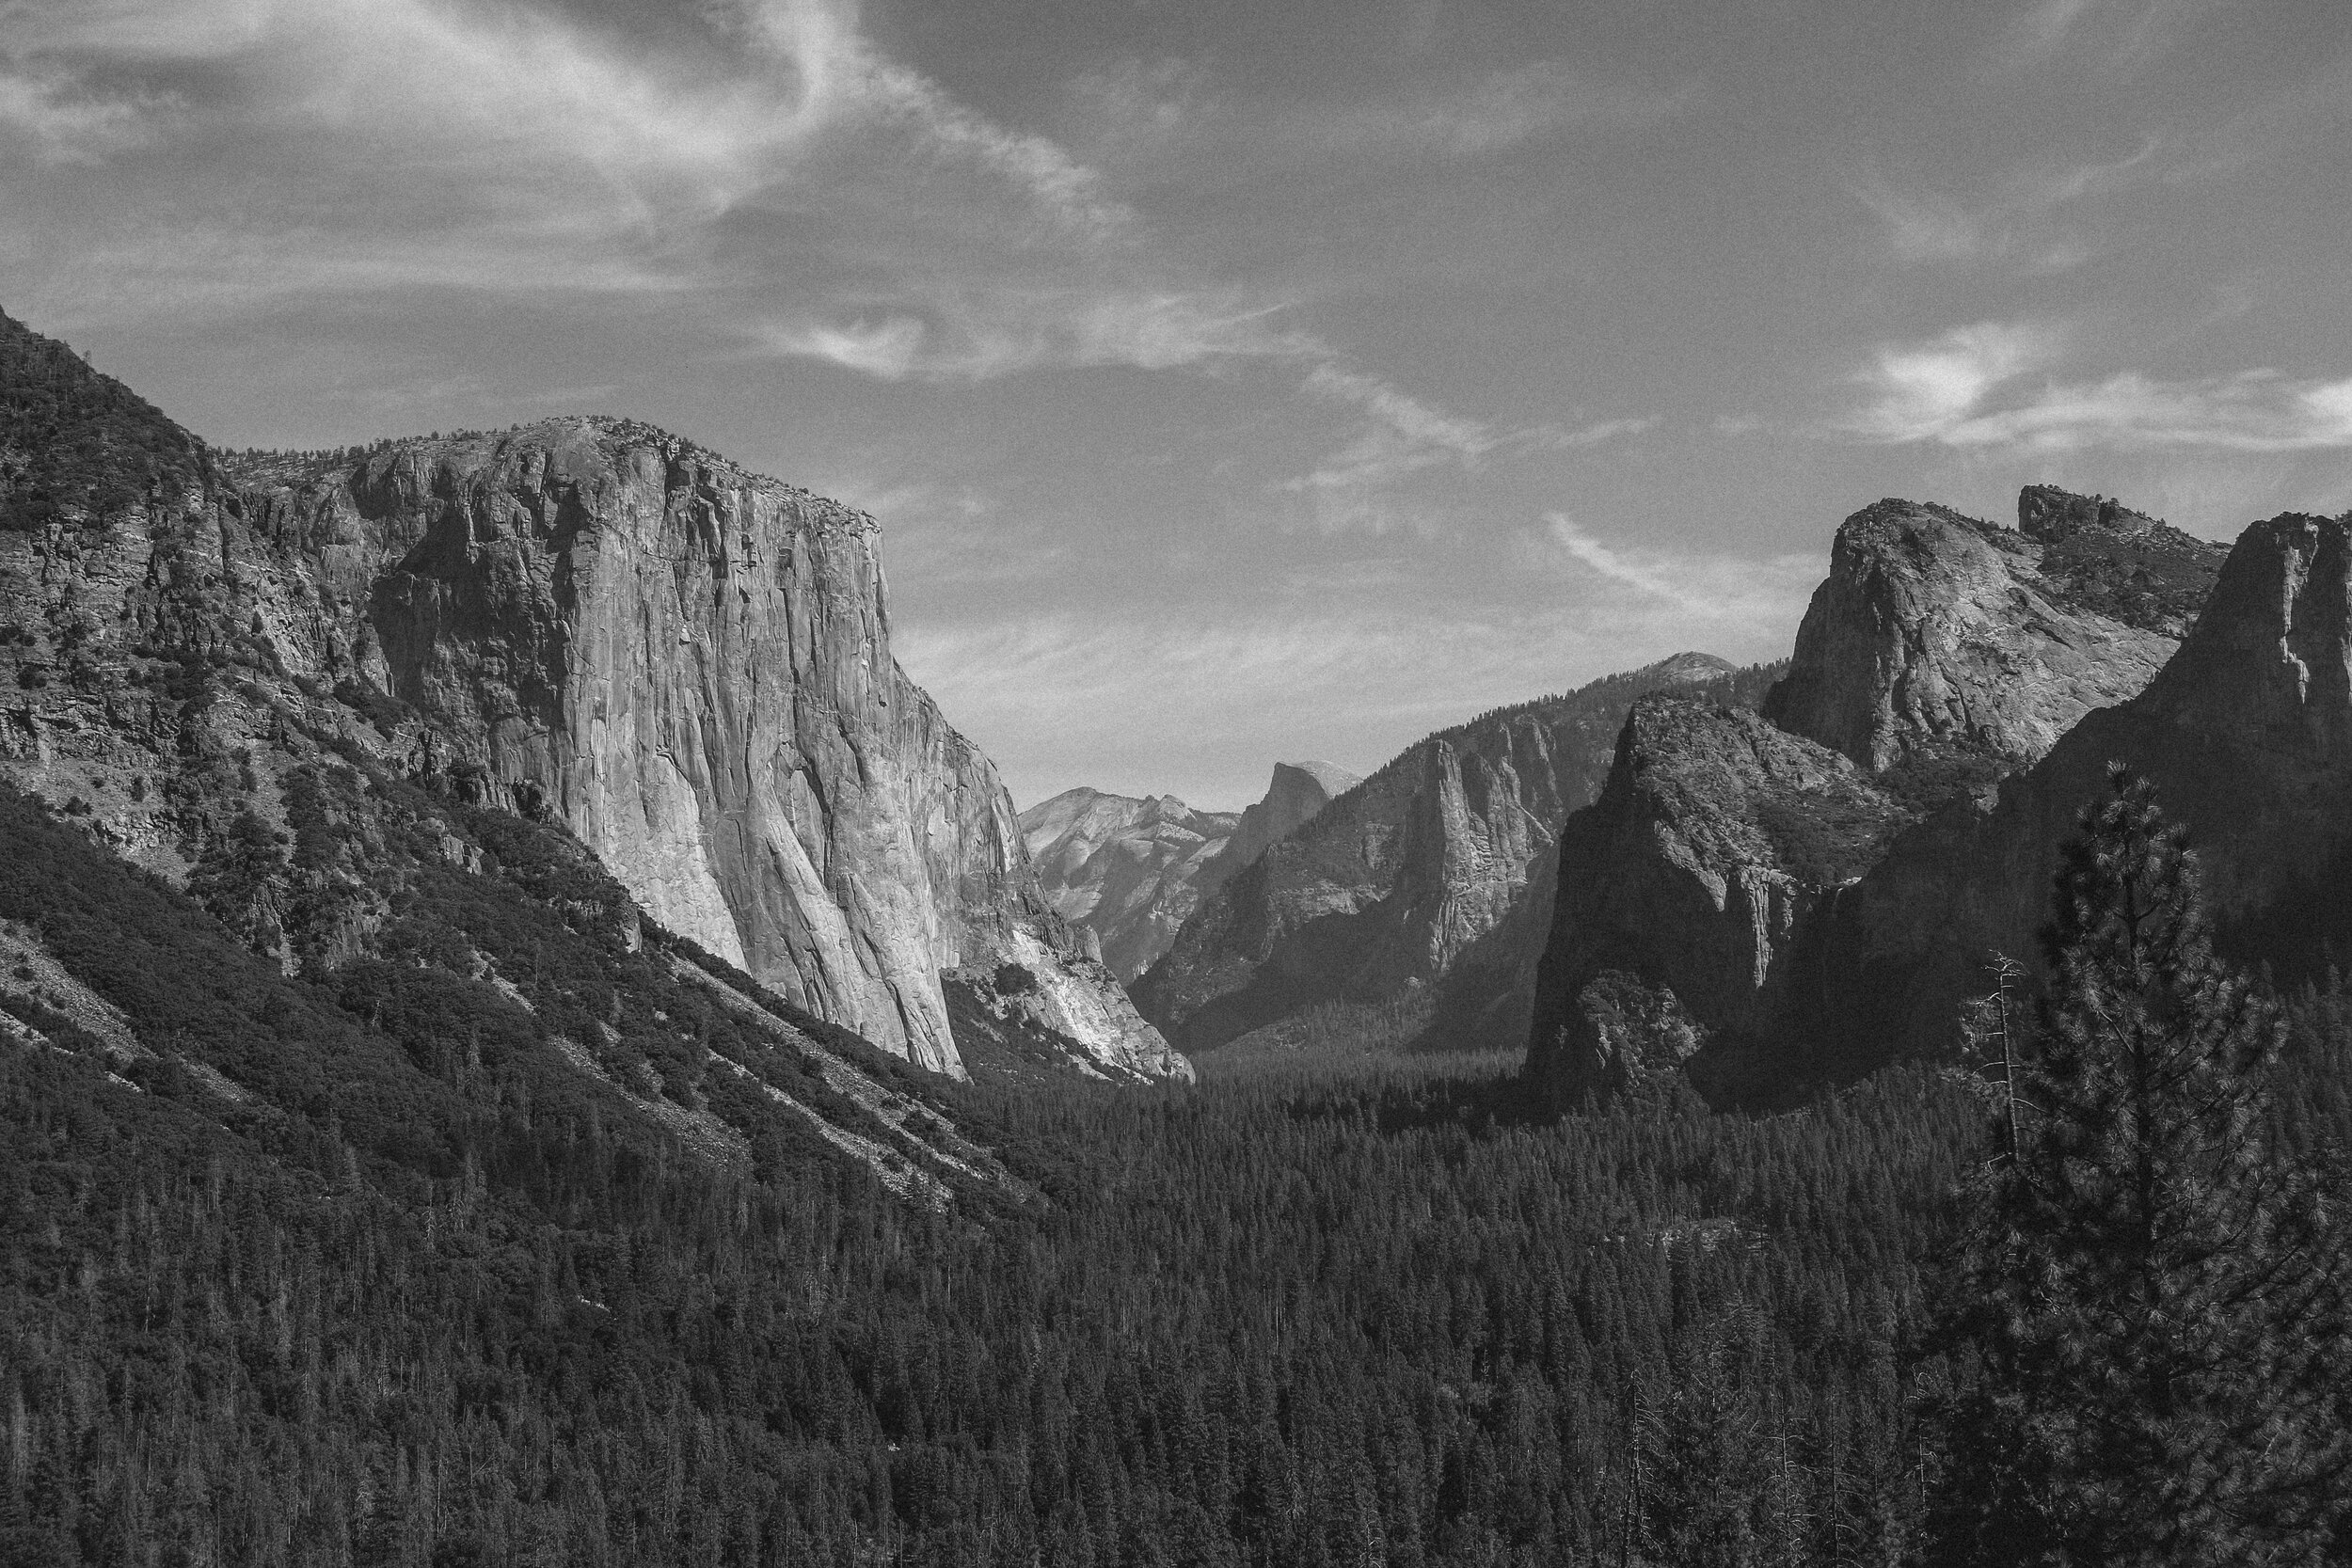 Tunnel View -  this is quite possibly the most iconic view of Yosemite Valley. El Capitan on the left…Half Dome tucked far back on the right hand side…and the valley displayed beautifully below. We were lucky to catch this view on the way out and it took my breath away.   Yosemite far exceeded my expectations and I am already dreaming of my next trip back!